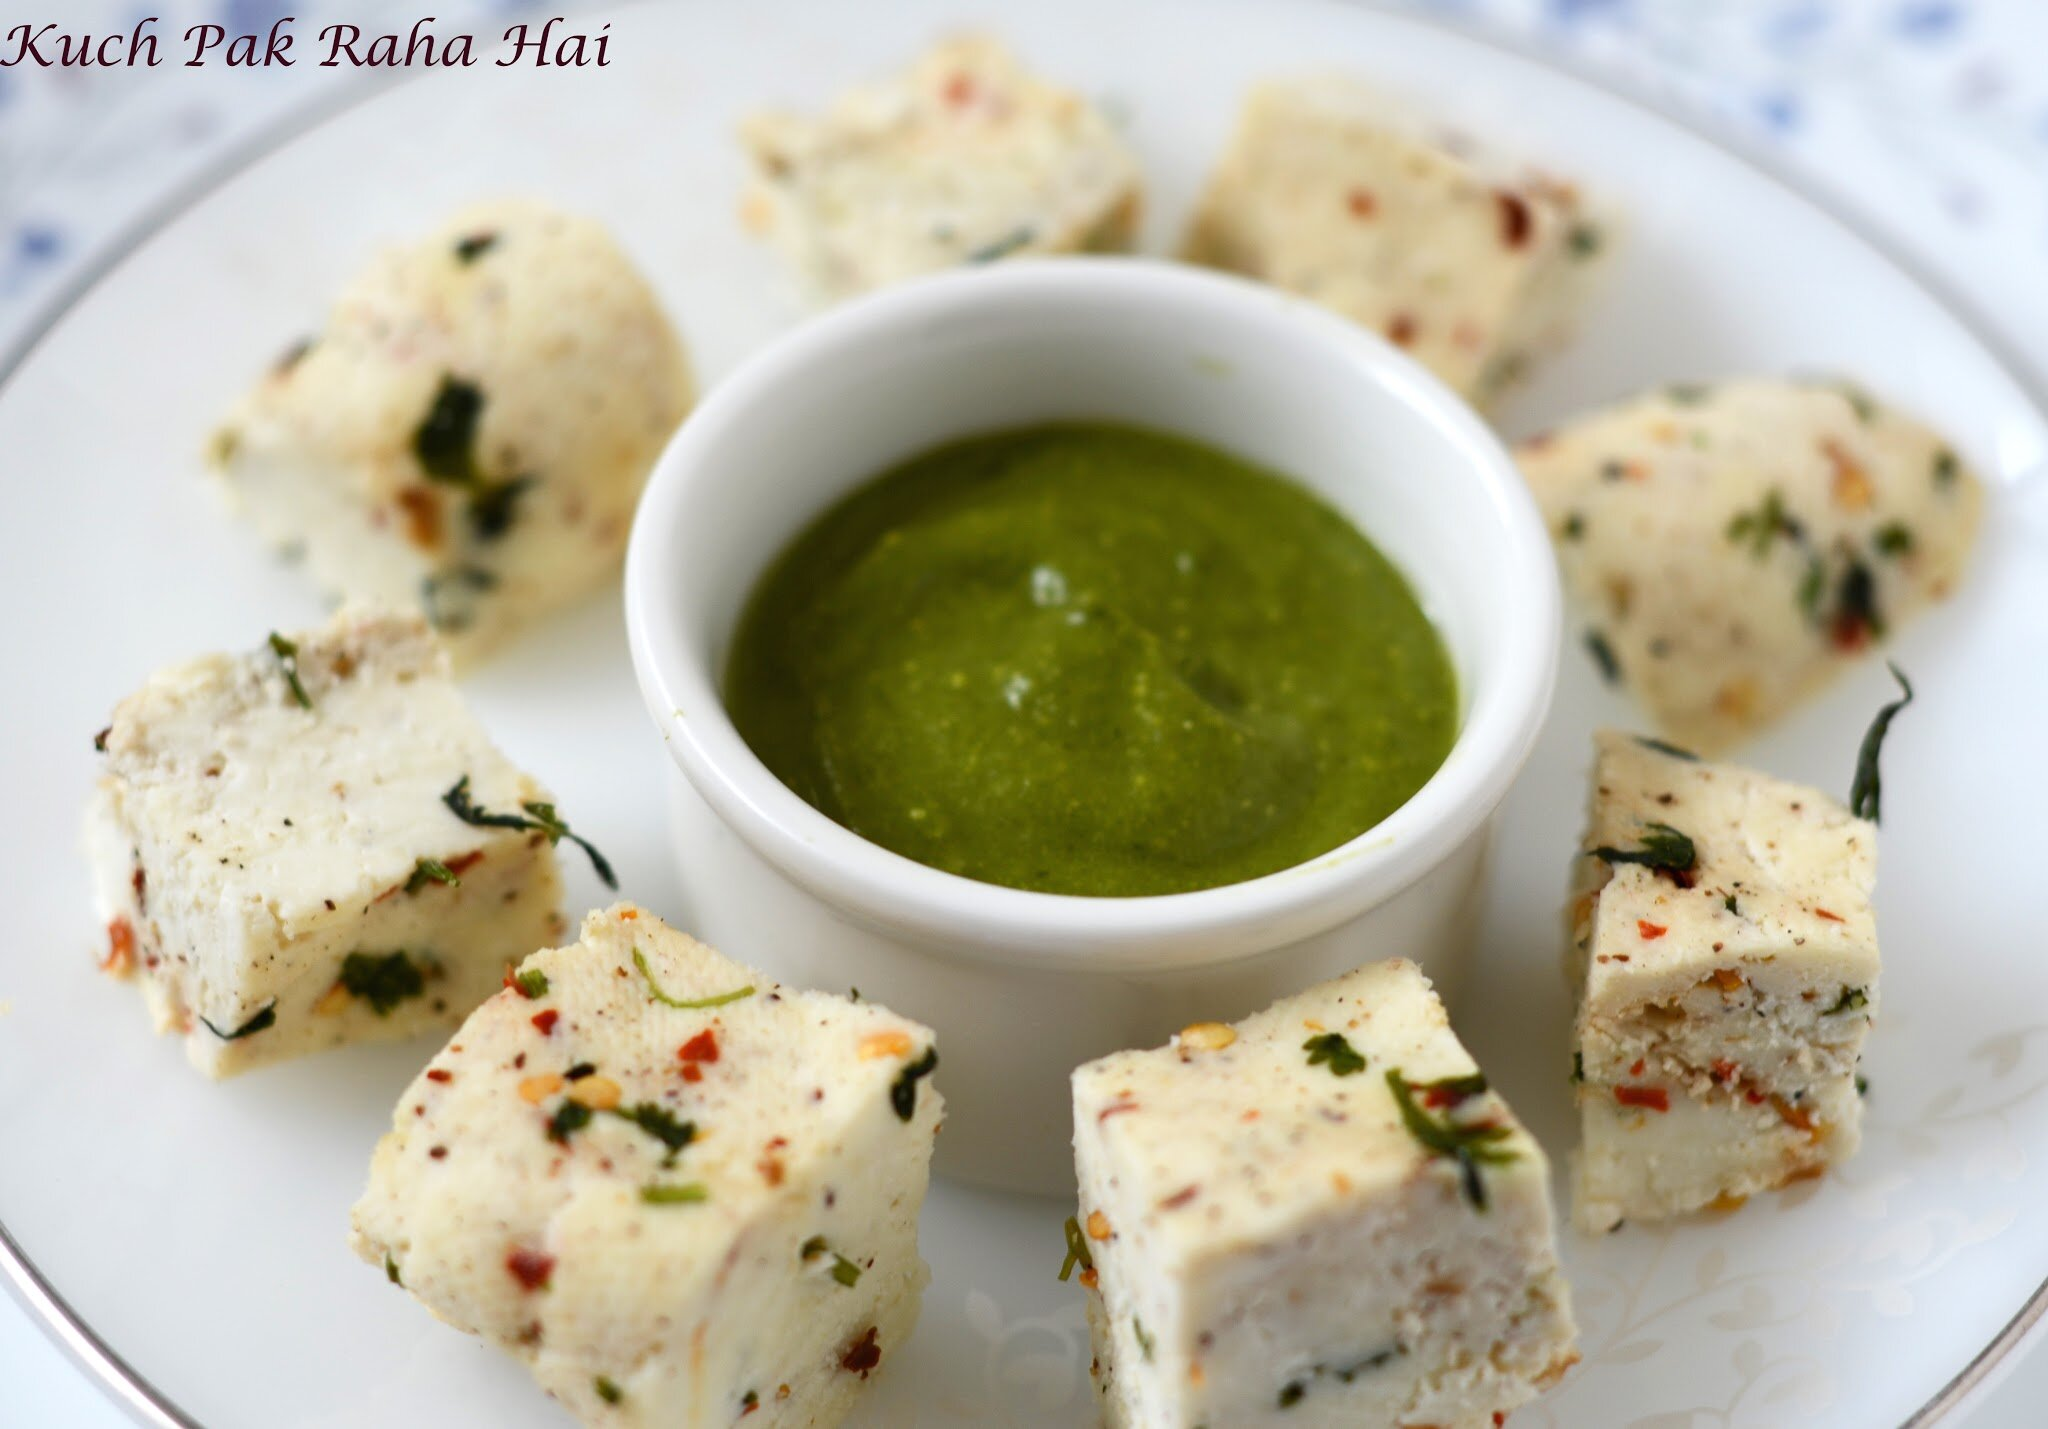 Herbed Spiced paneer with herbs and spices